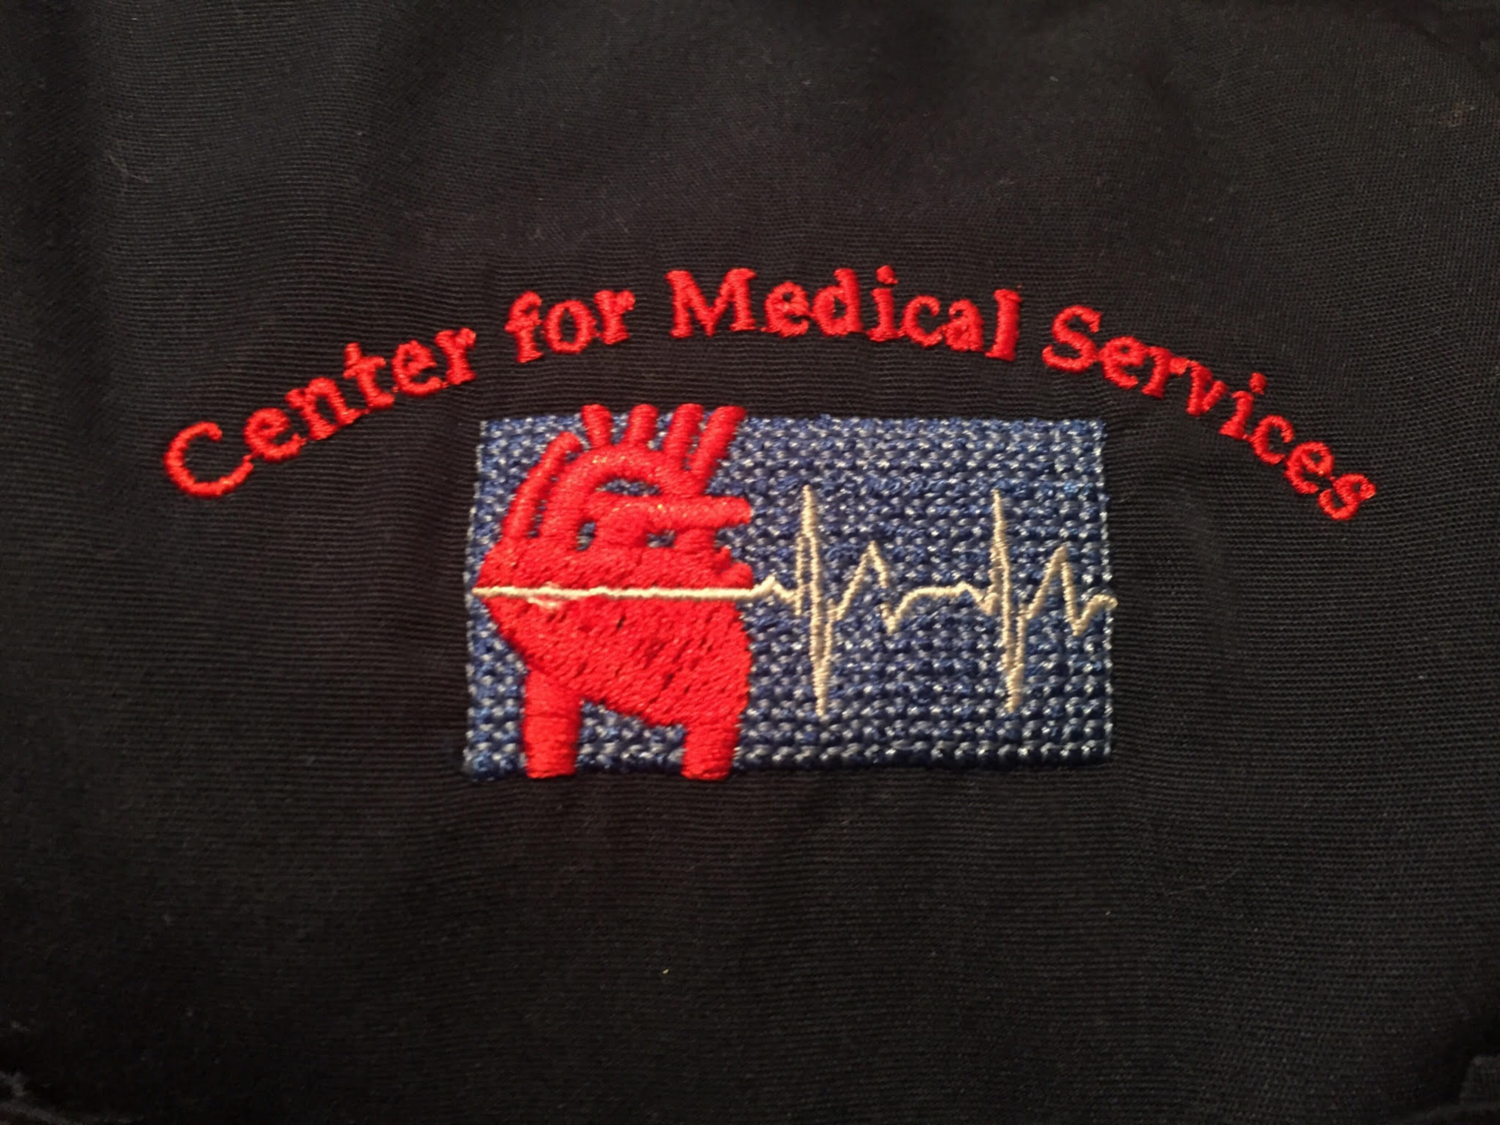 Center for Medical Services, LLC